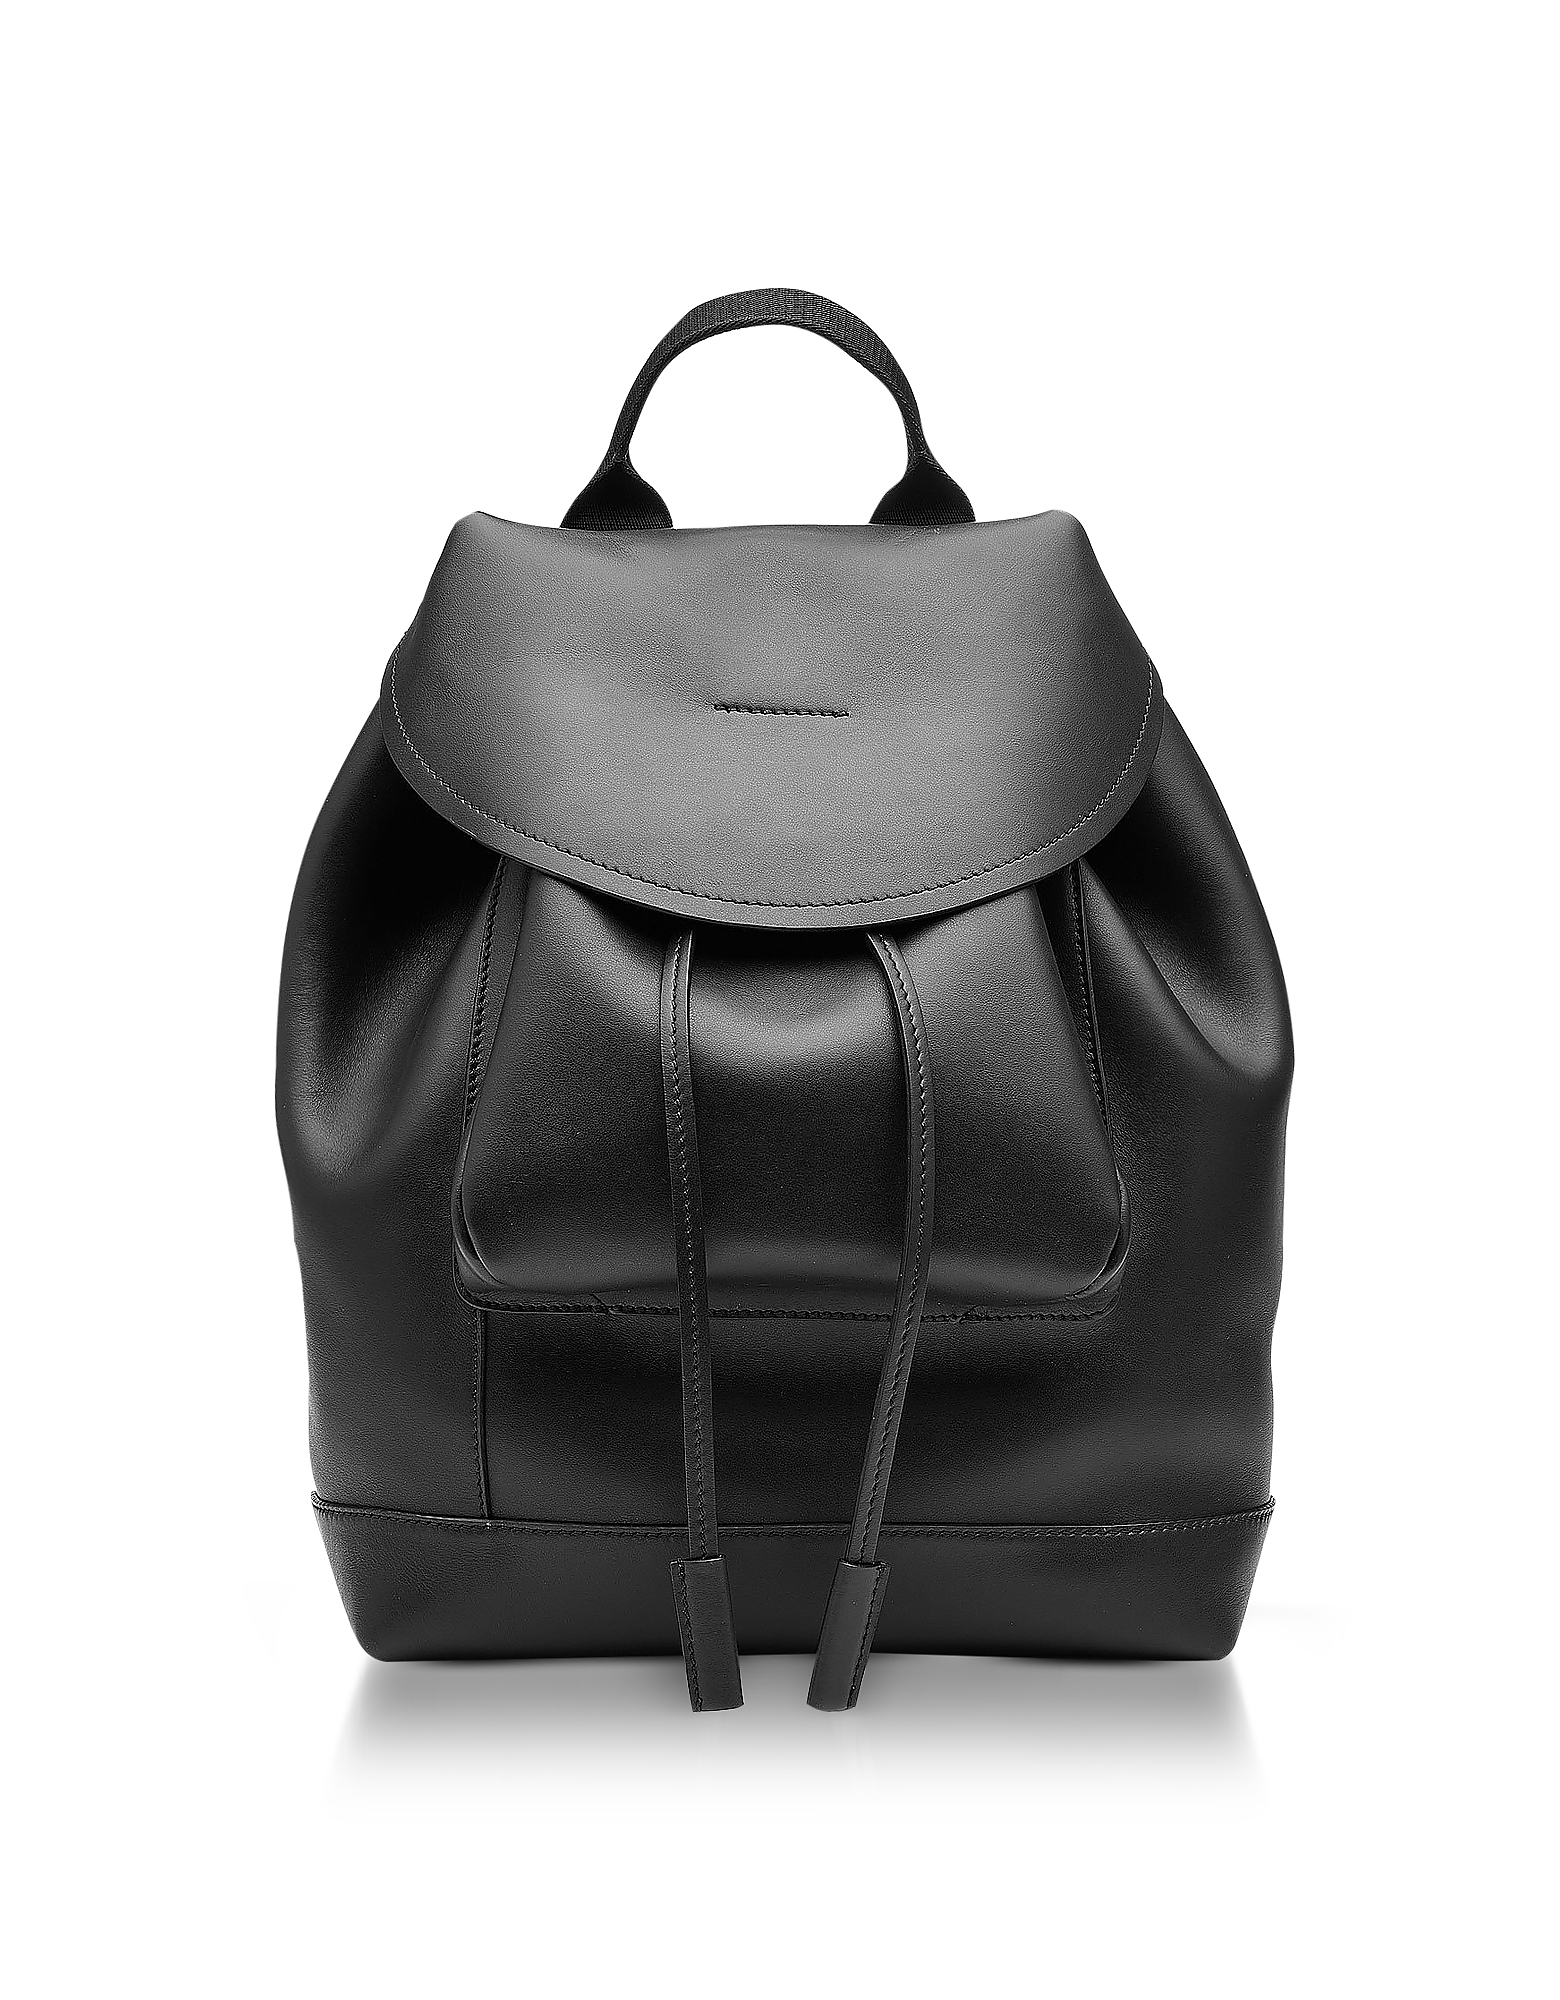 Marni Handbags, Black Leather Kit Backpack